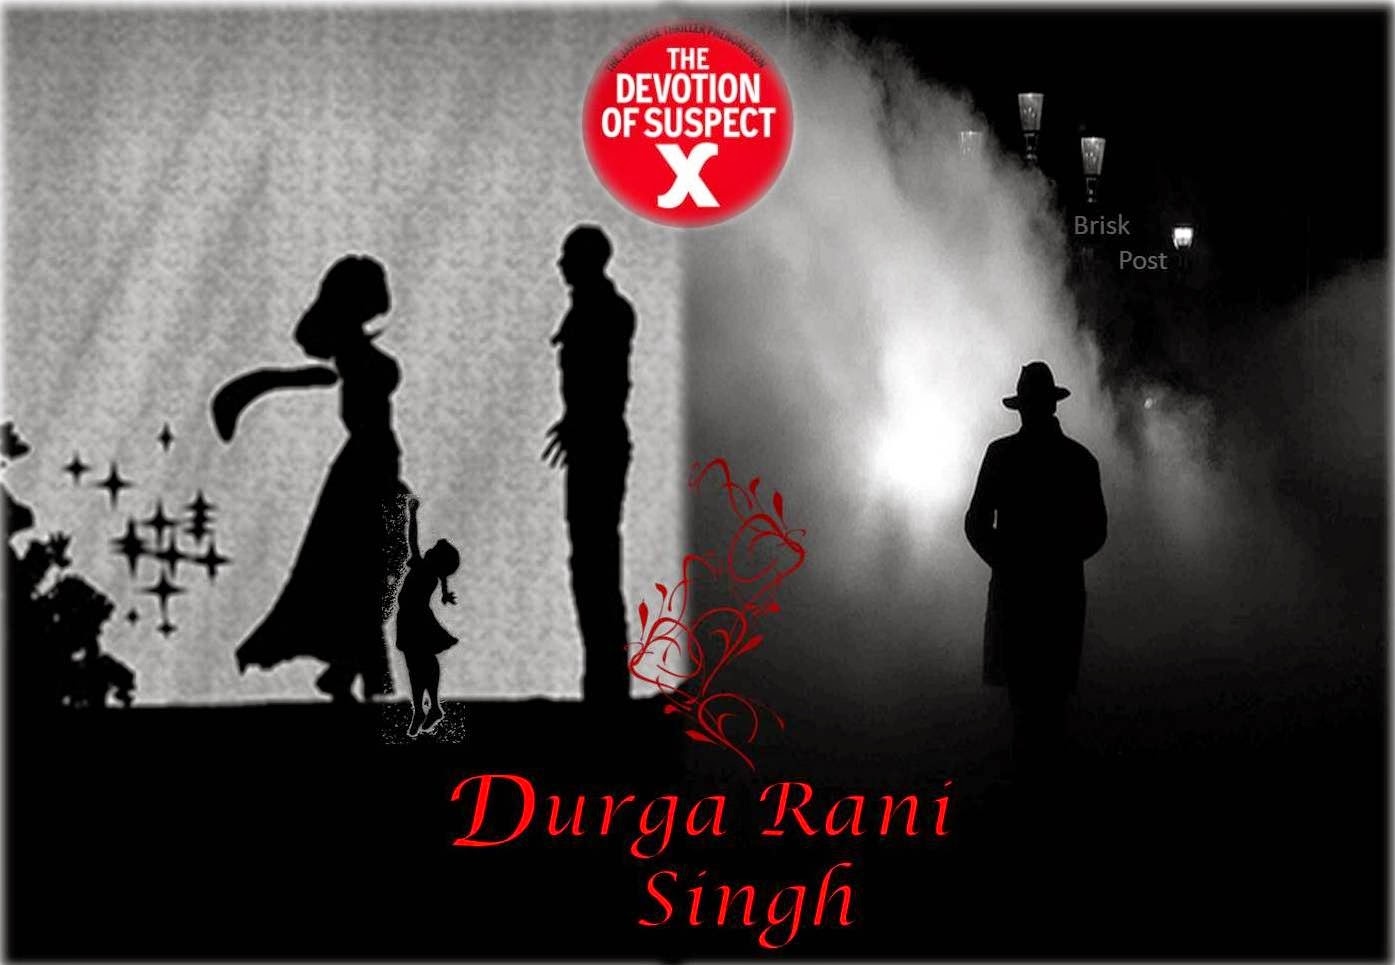 Characters of Bollywood movie Durga Rani Singh which is based on a Japanese novel The Devotion of Suspect X by Keigo Higashino